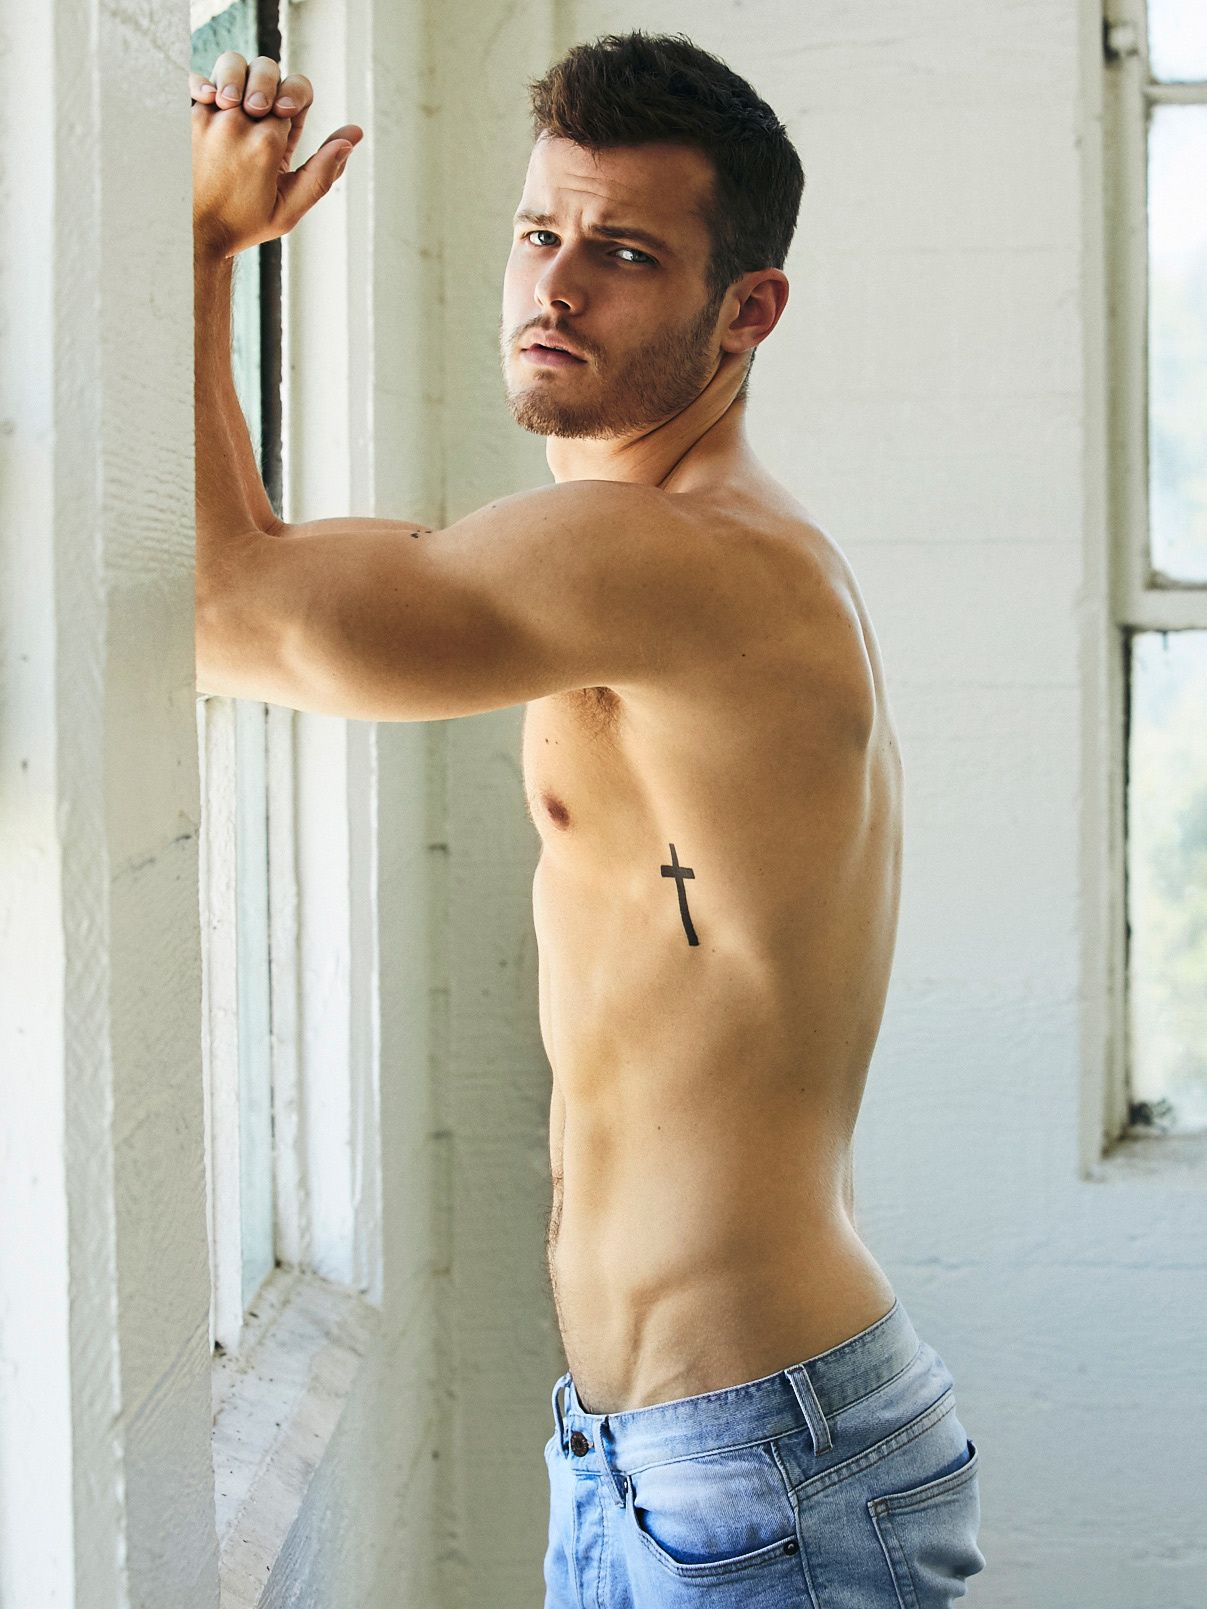 Y&R star Michael Mealor shirtless leaning against a window.